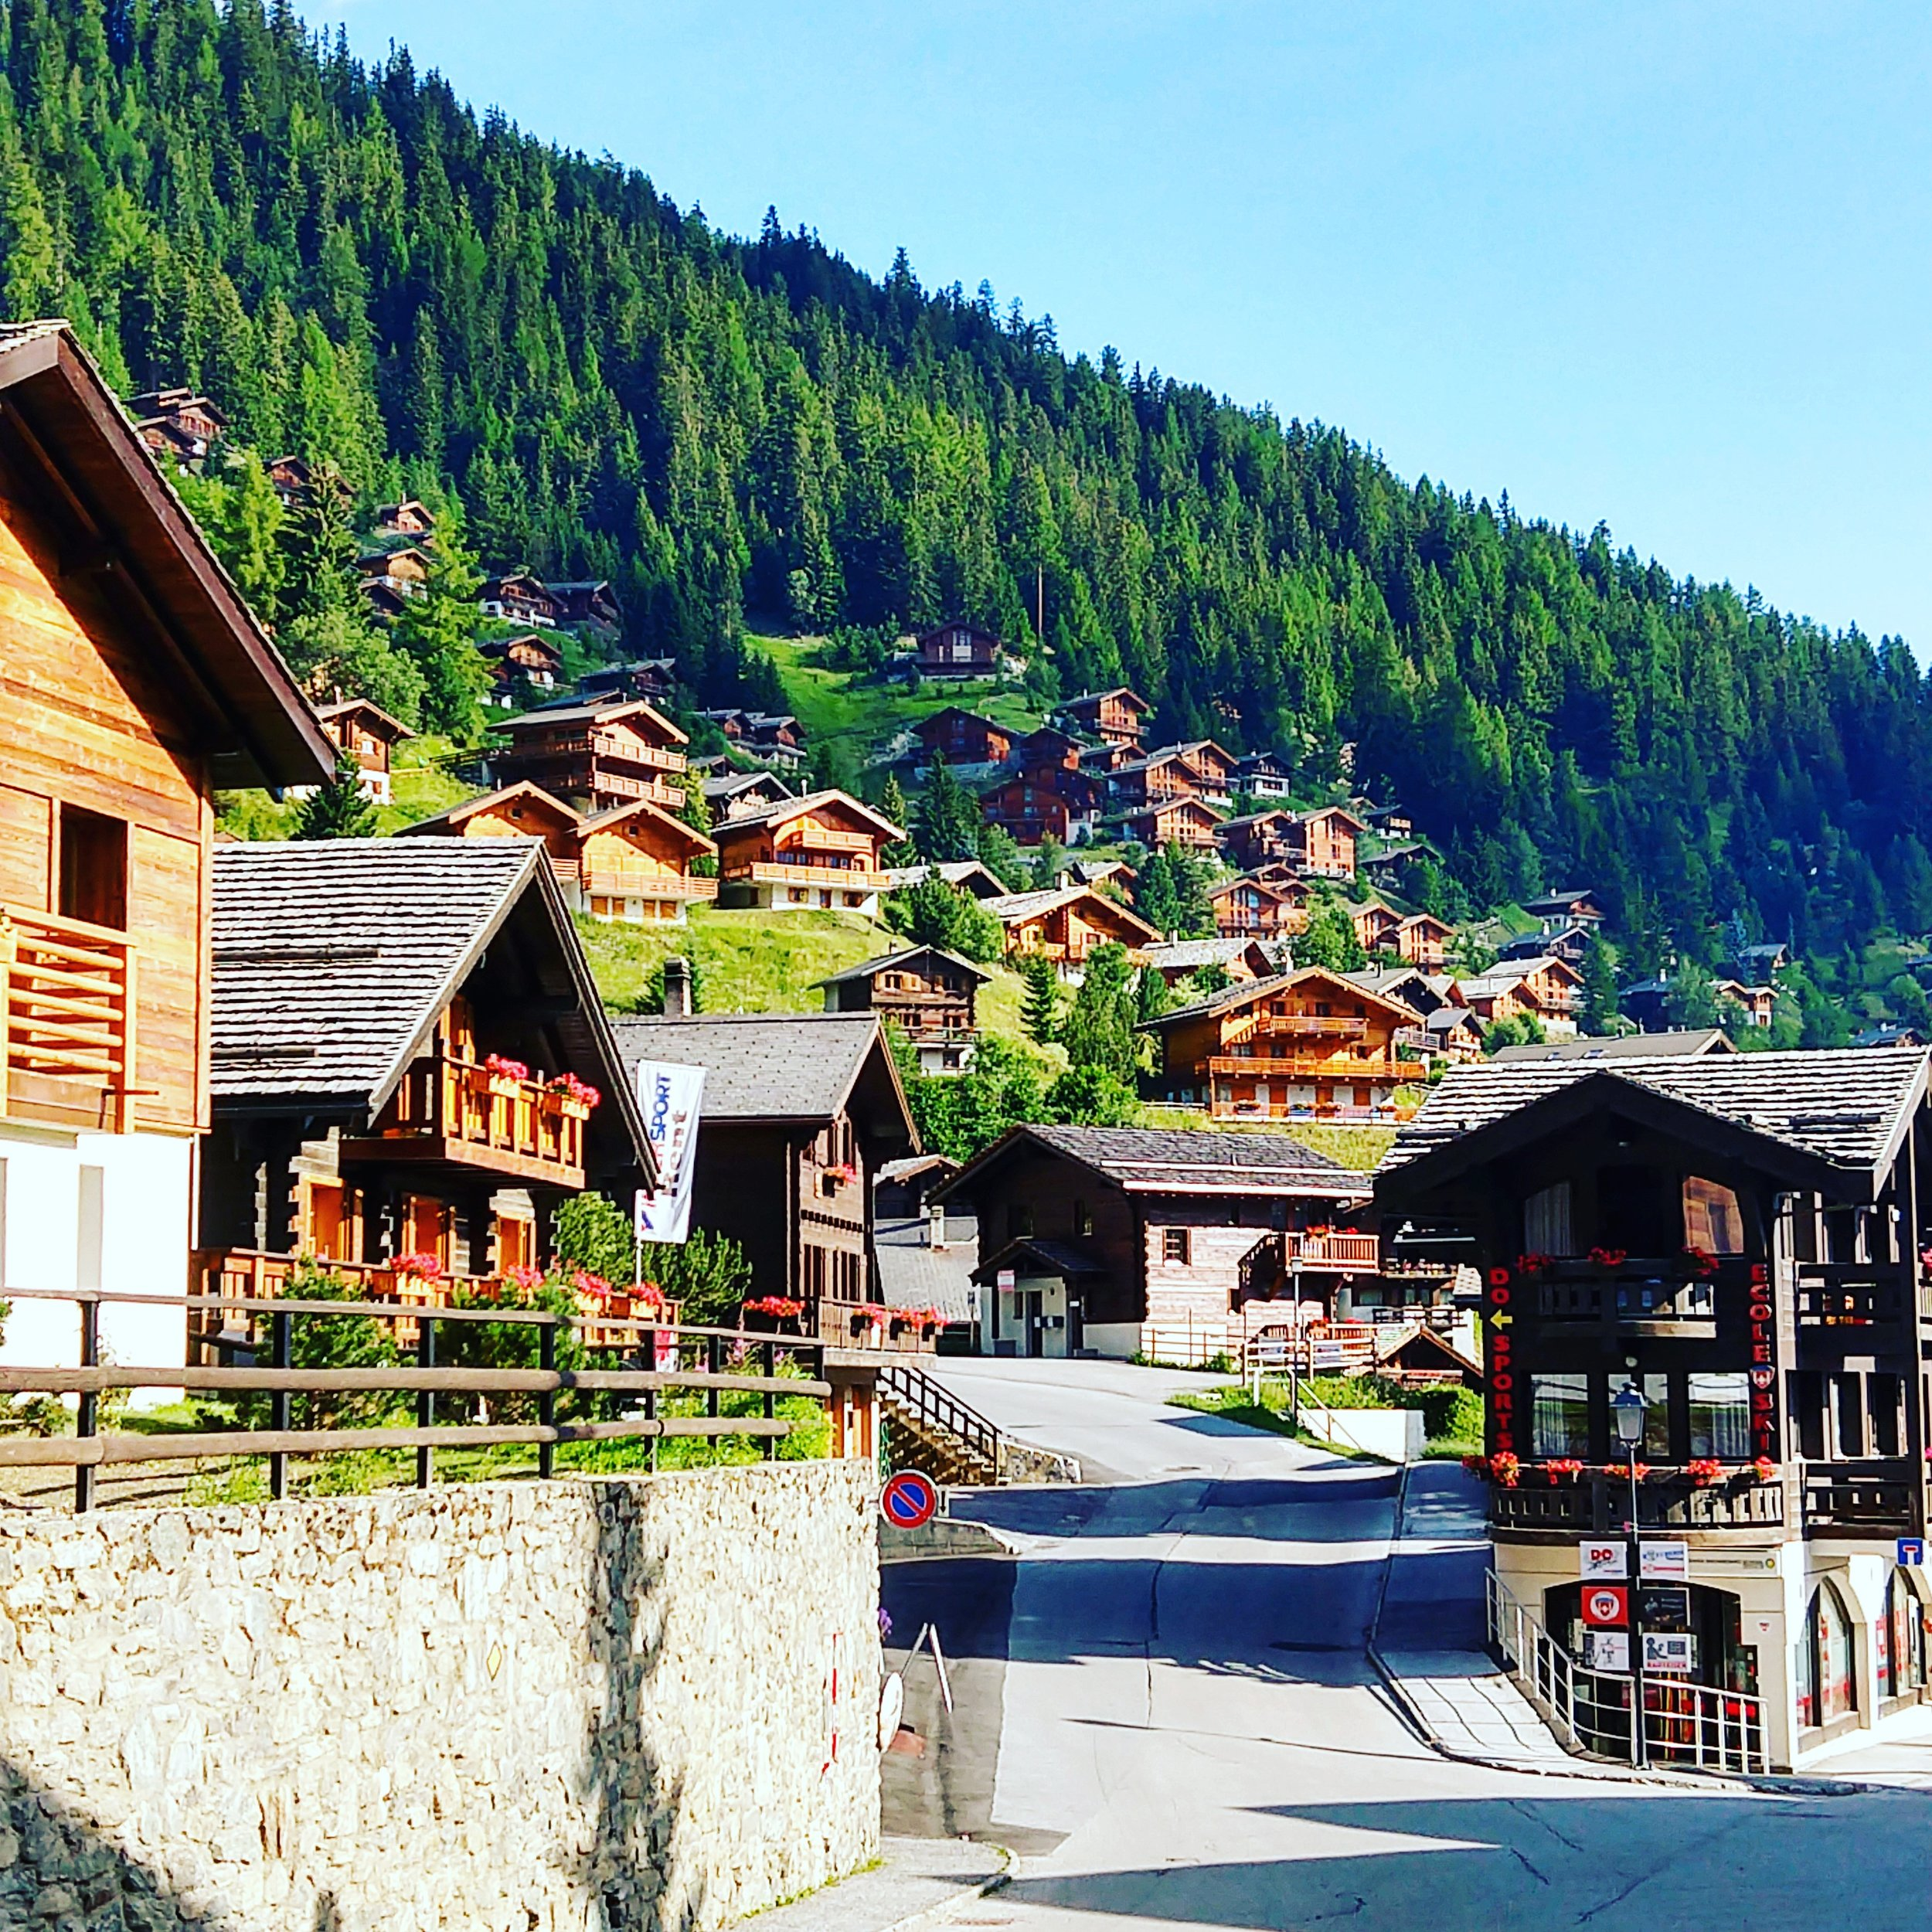 Charming chalets dot the mountainside above Grimentz.